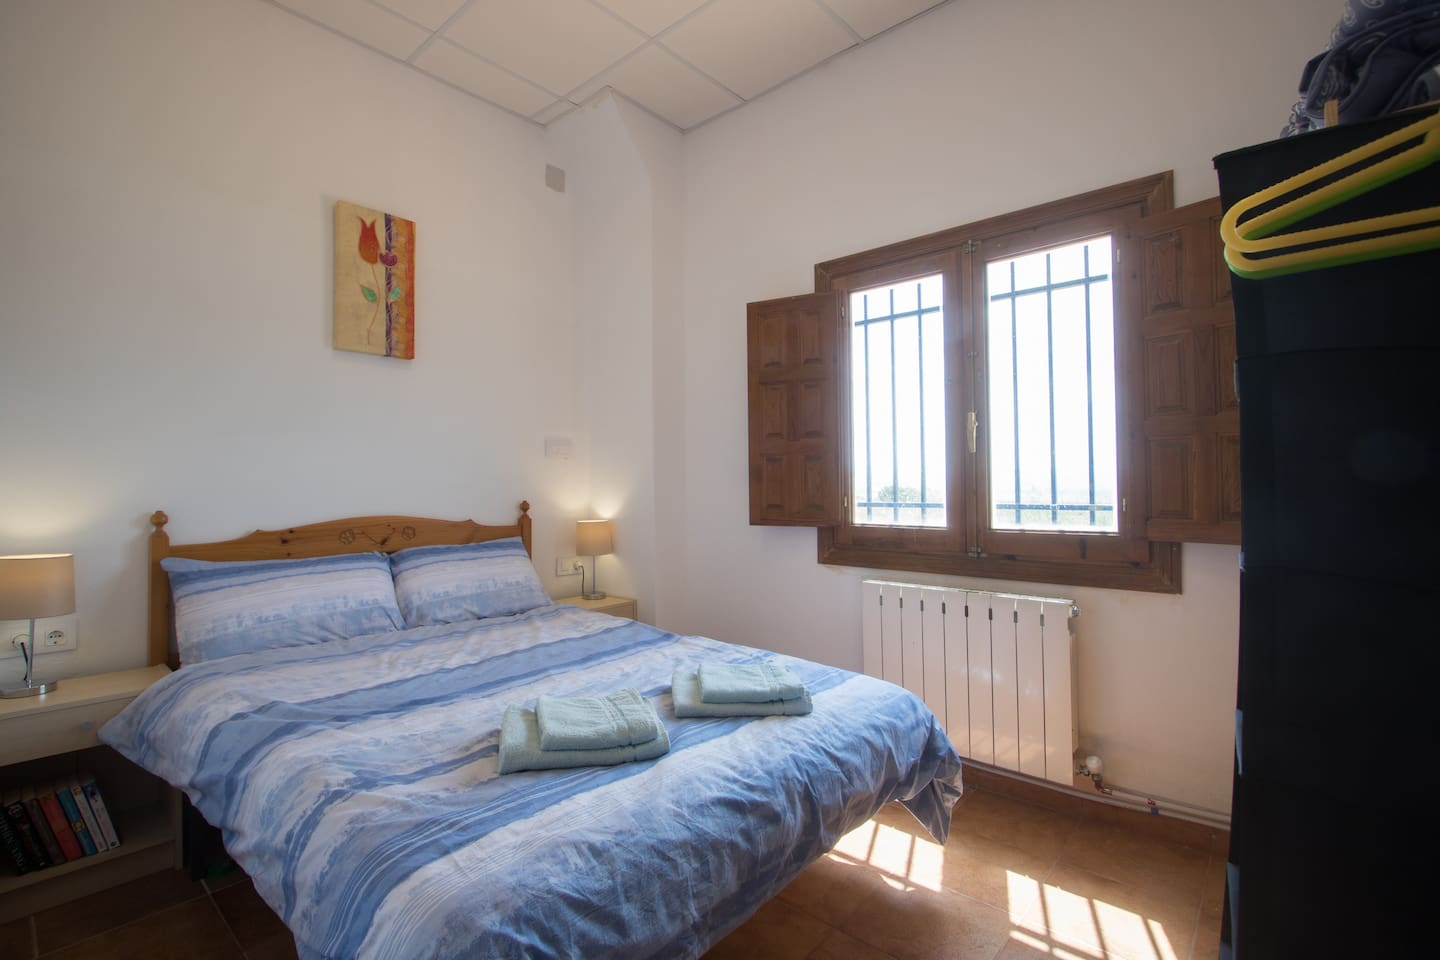 The bright and cosy bedroom with window shutters for a good sleep, plus storage and hangers